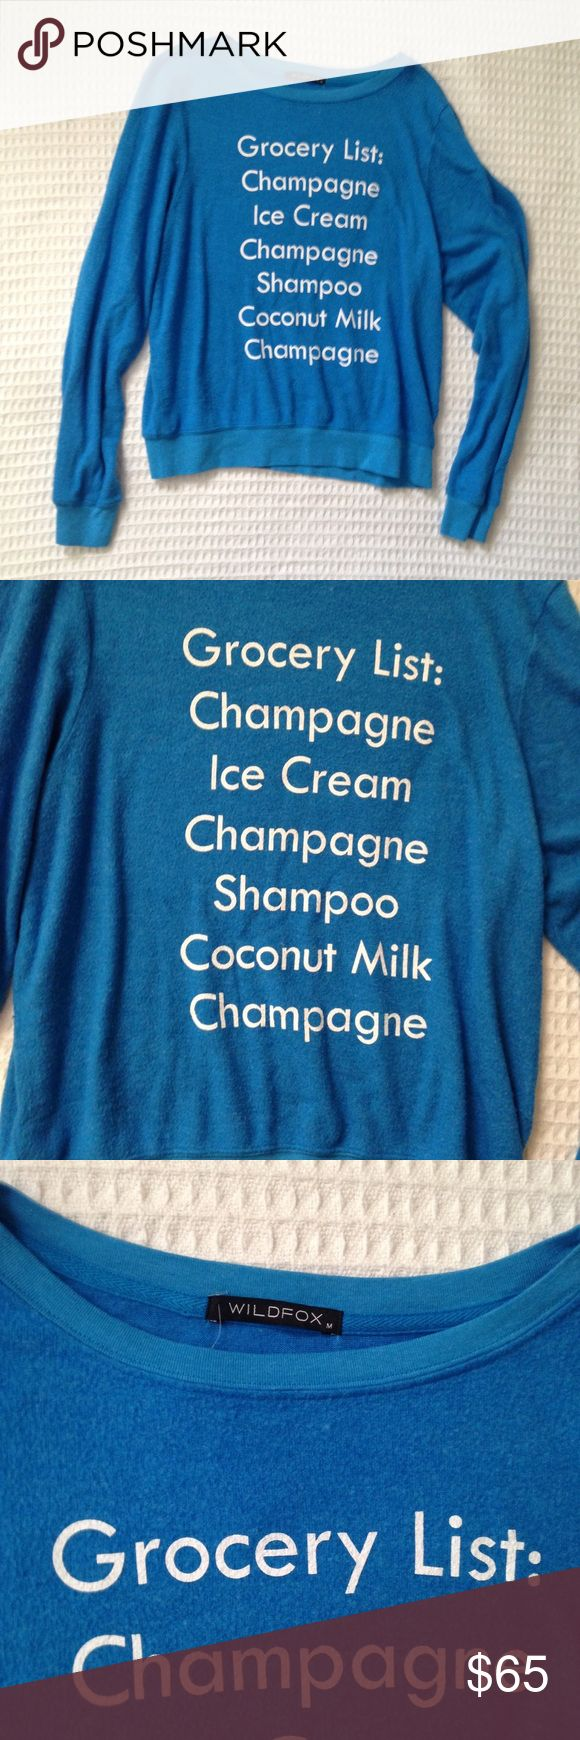 NWOT Wildfox grocery list blue jumper size medium Wildfox super soft blue long sleeve Grocery List pullover sweatshirt. New without tags. No trades, offers welcome. Wildfox Tops